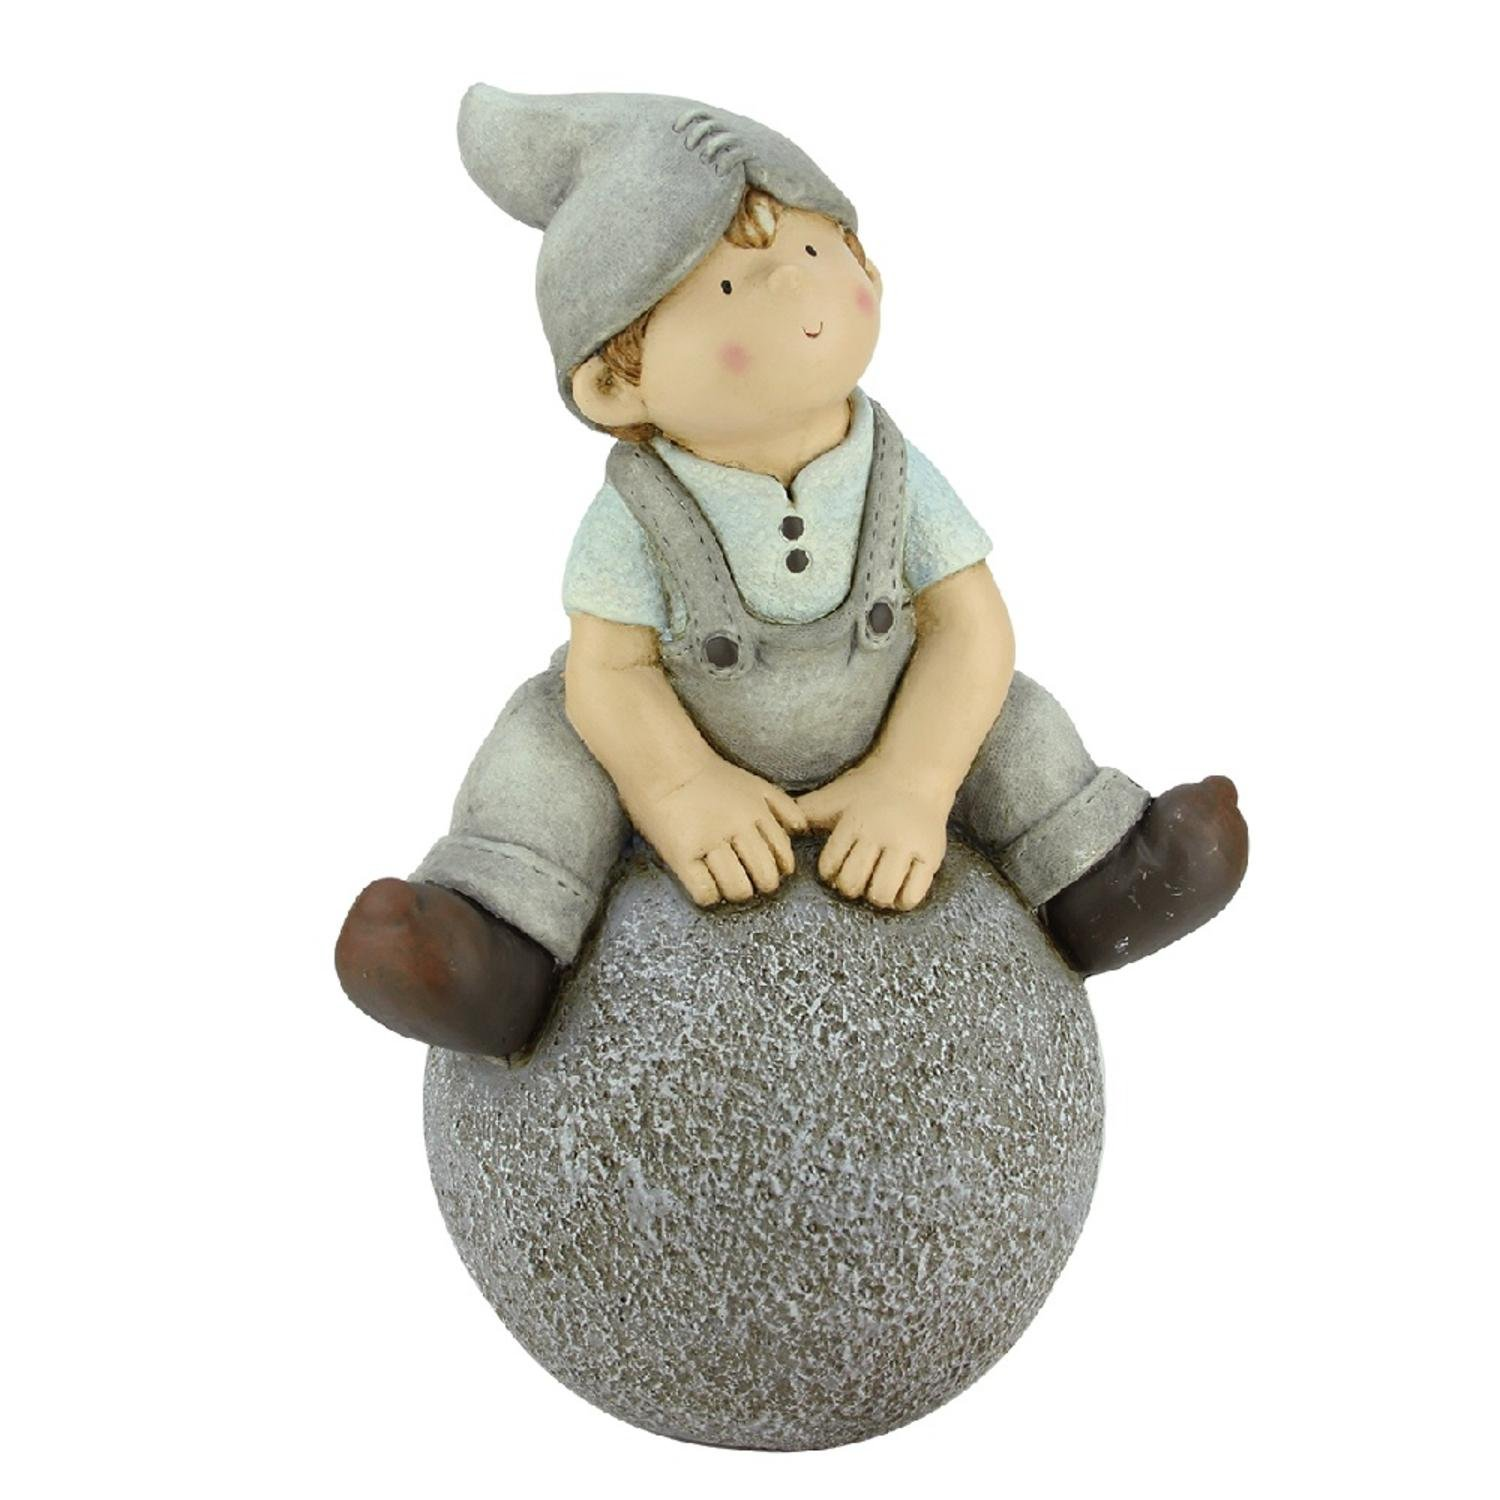 Northlight CB64981 Young Boy Gnome Sitting on Ball Spring Outdoor Garden Patio Figure Statuary and Fountains, 16'', Gray